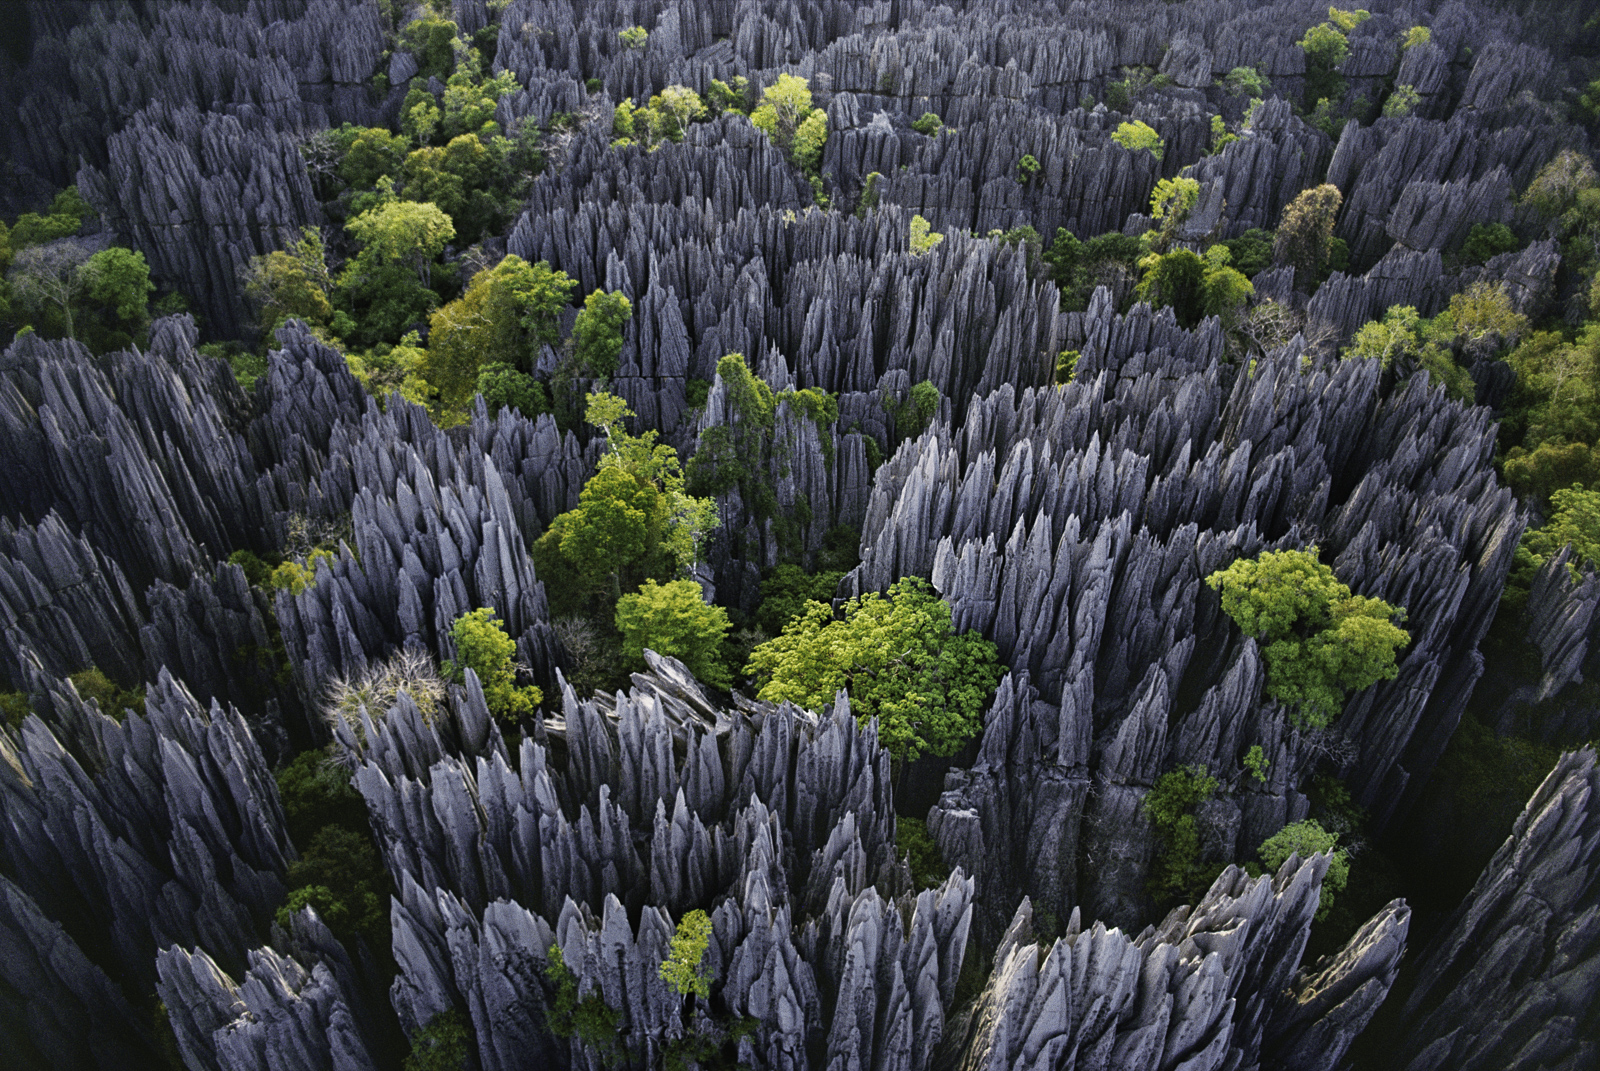 Eroded limestone pinnacles, Bemaraha National Park, Madagascar